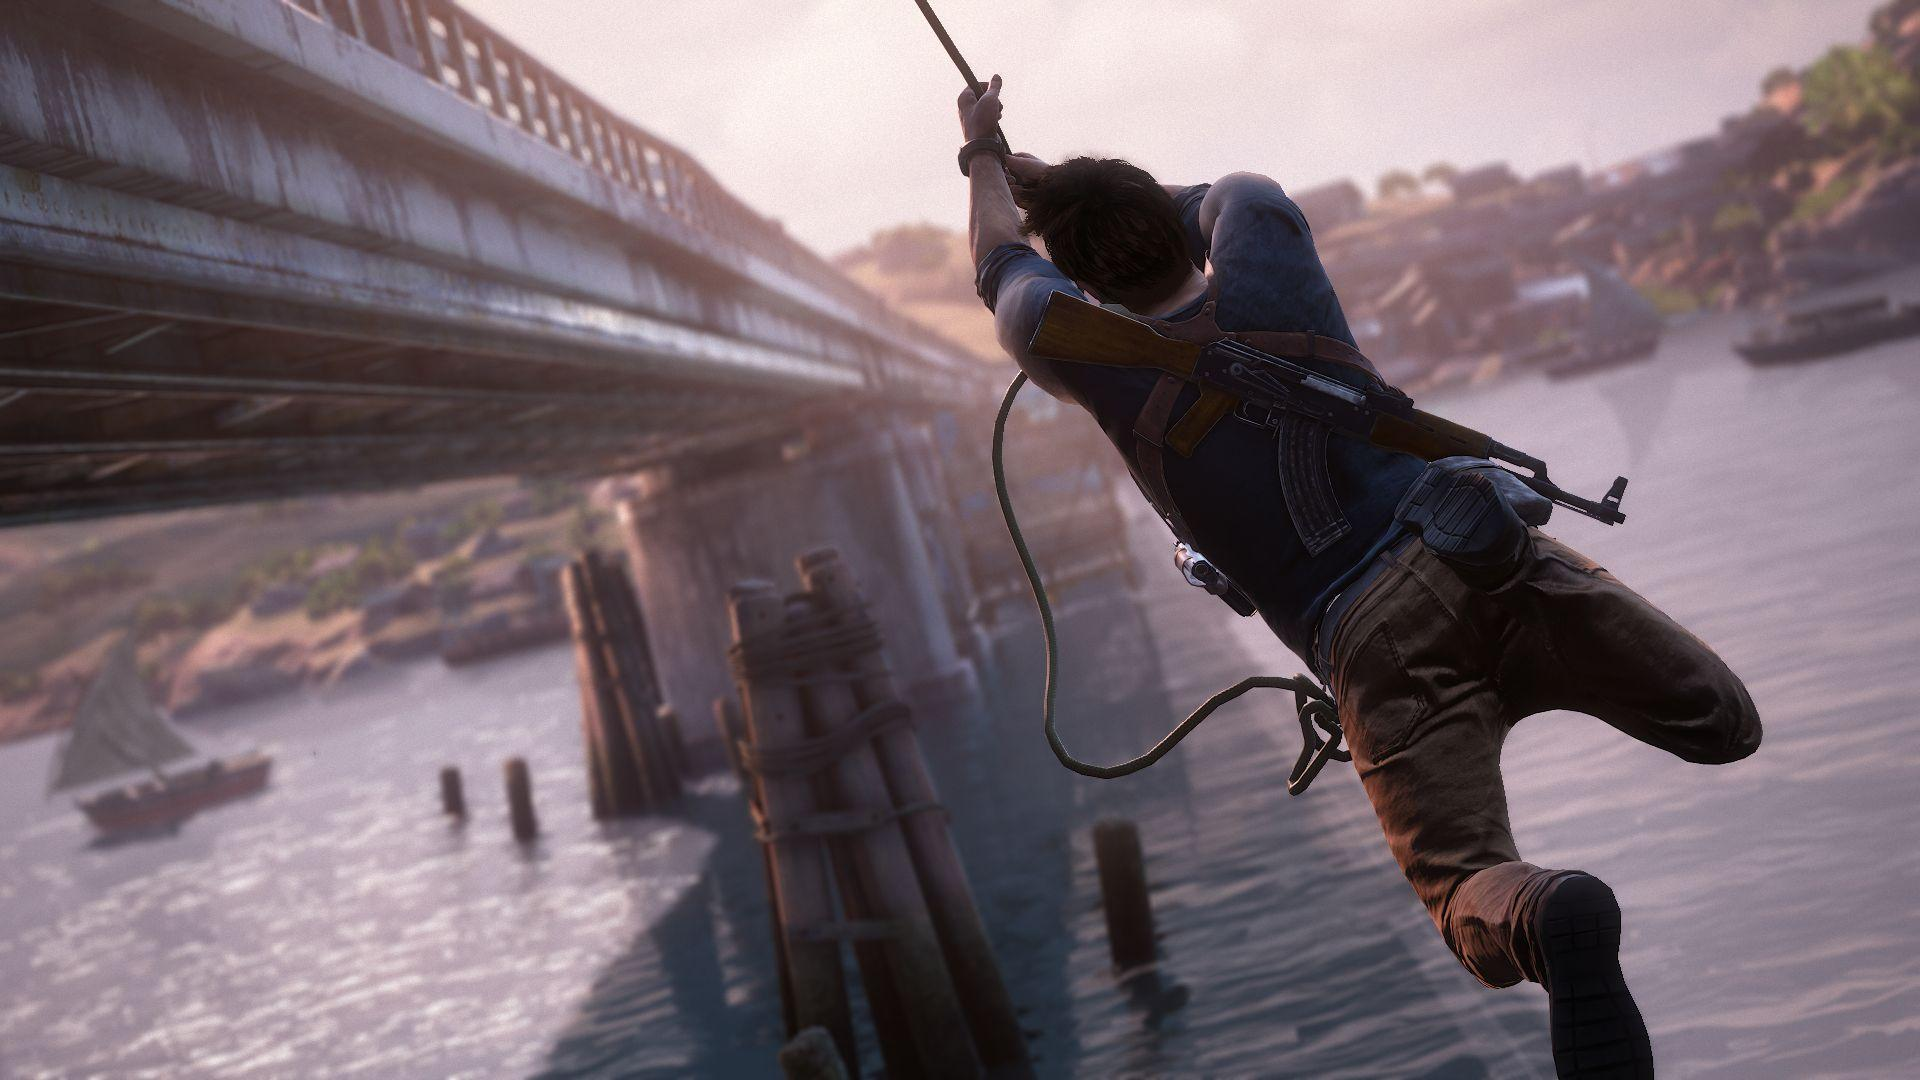 589686-uncharted-4-primer-analisis-ve-luz